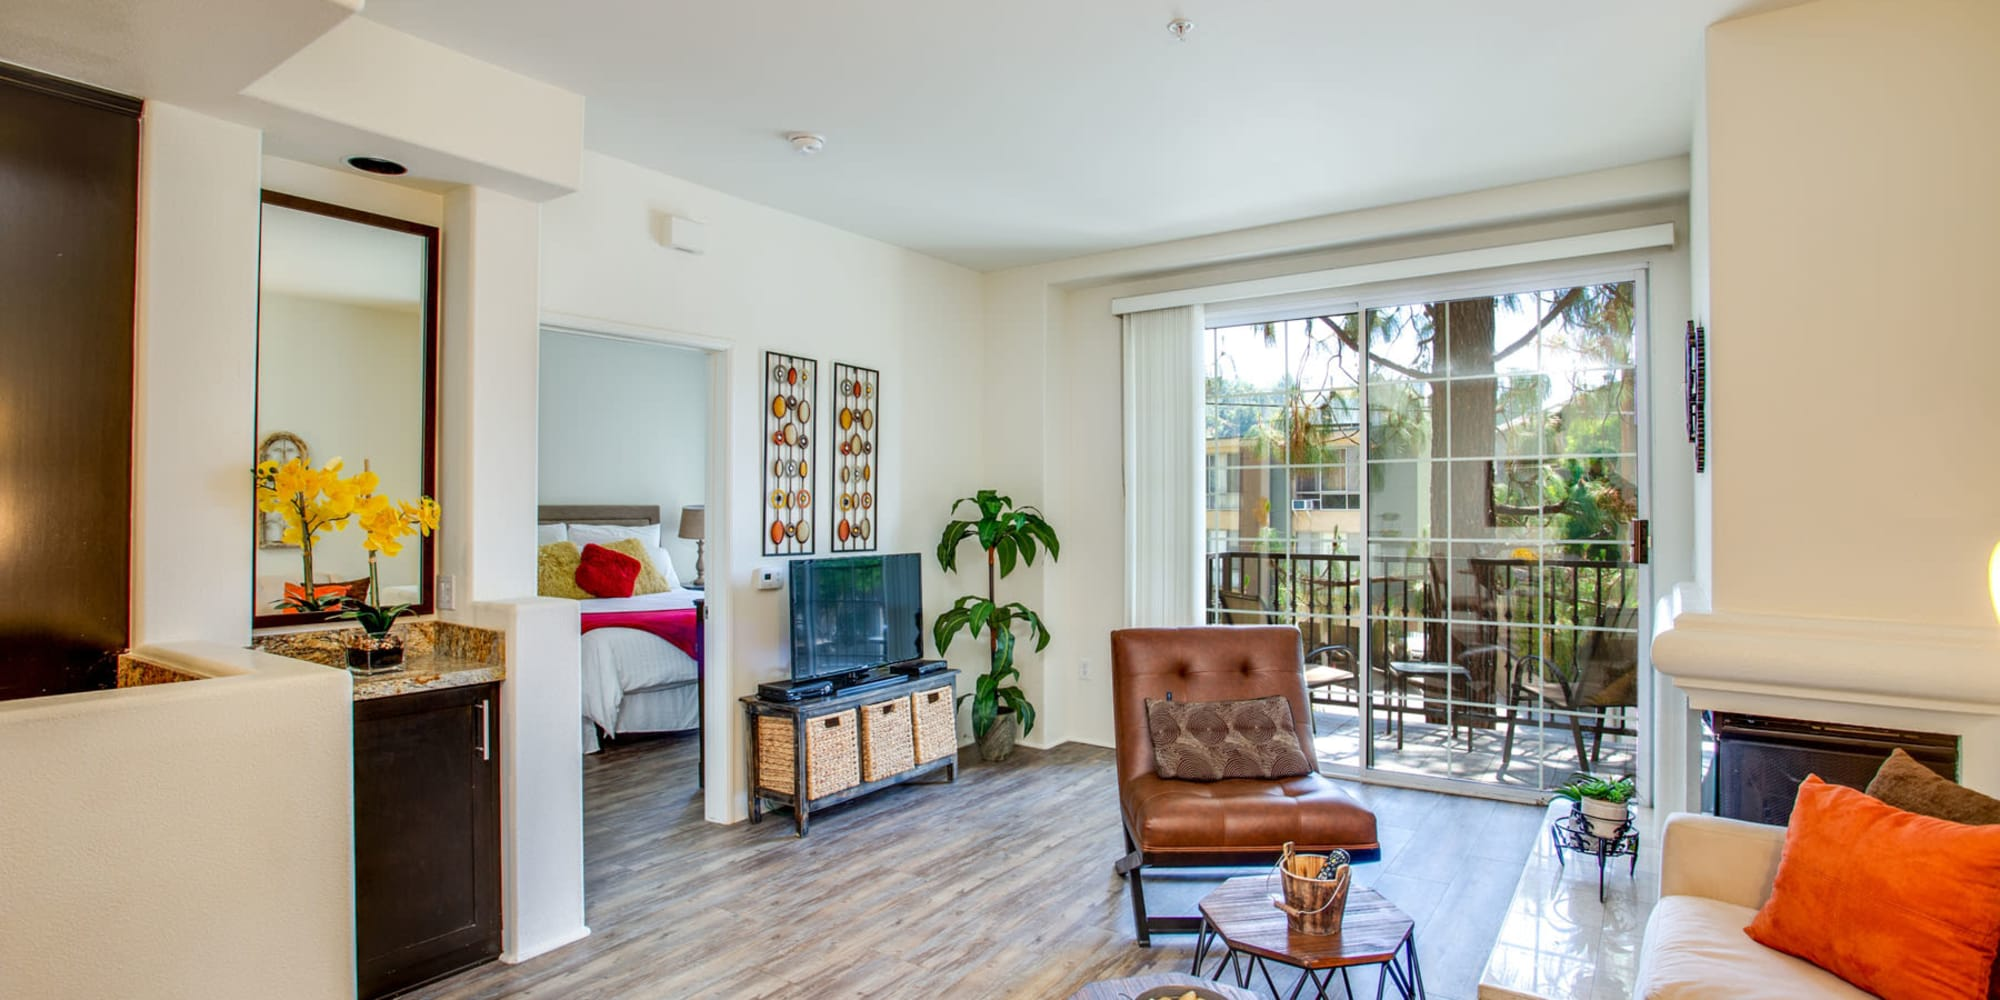 Beautifully furnished model luxury home's living space at L'Estancia in Studio City, California